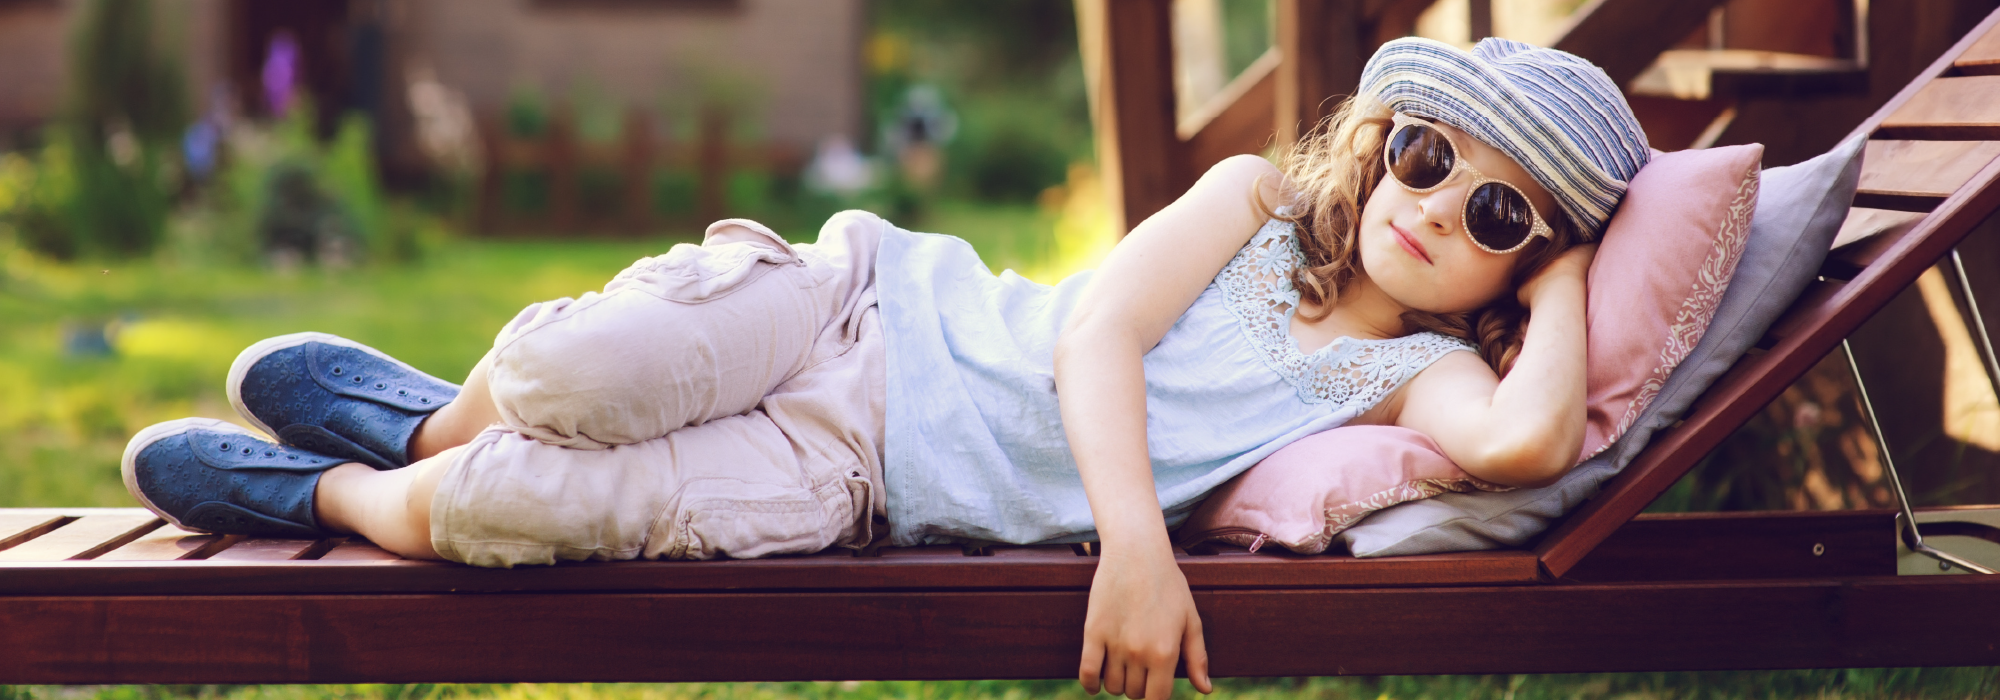 Little girl lounging on chair wearing a hat and sunglasses